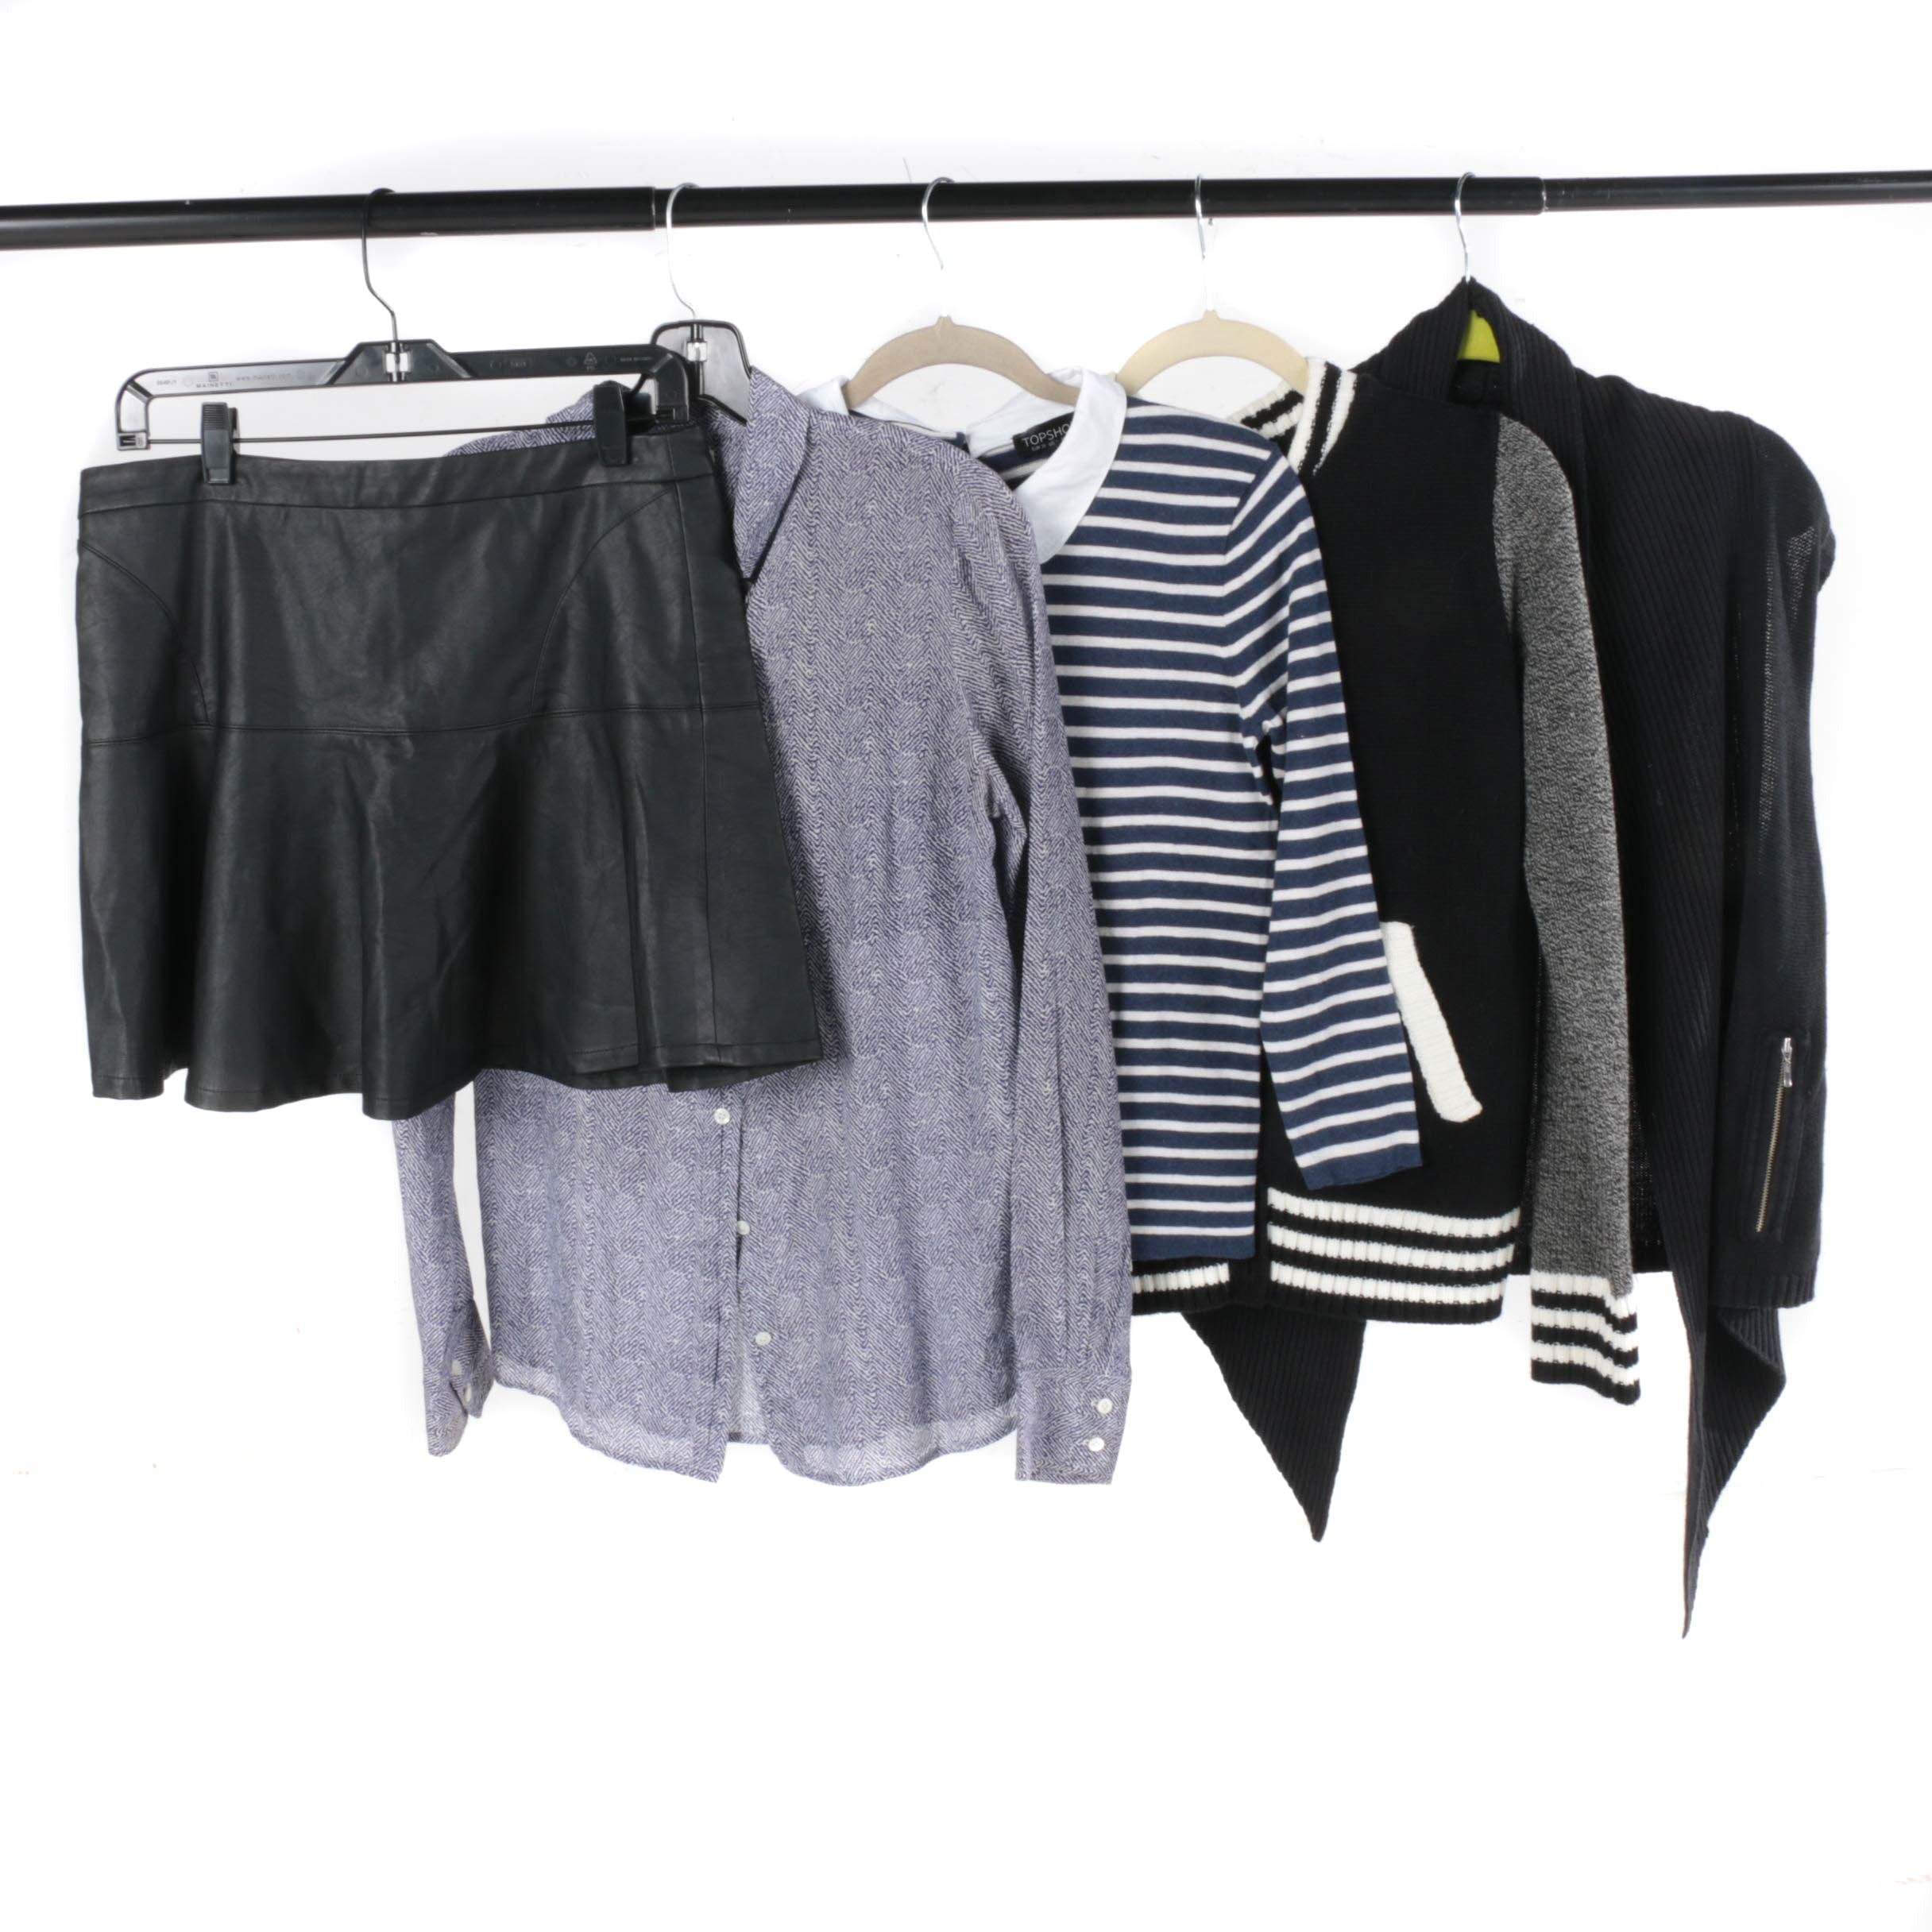 Women's Clothing Including Topshop and J. Crew